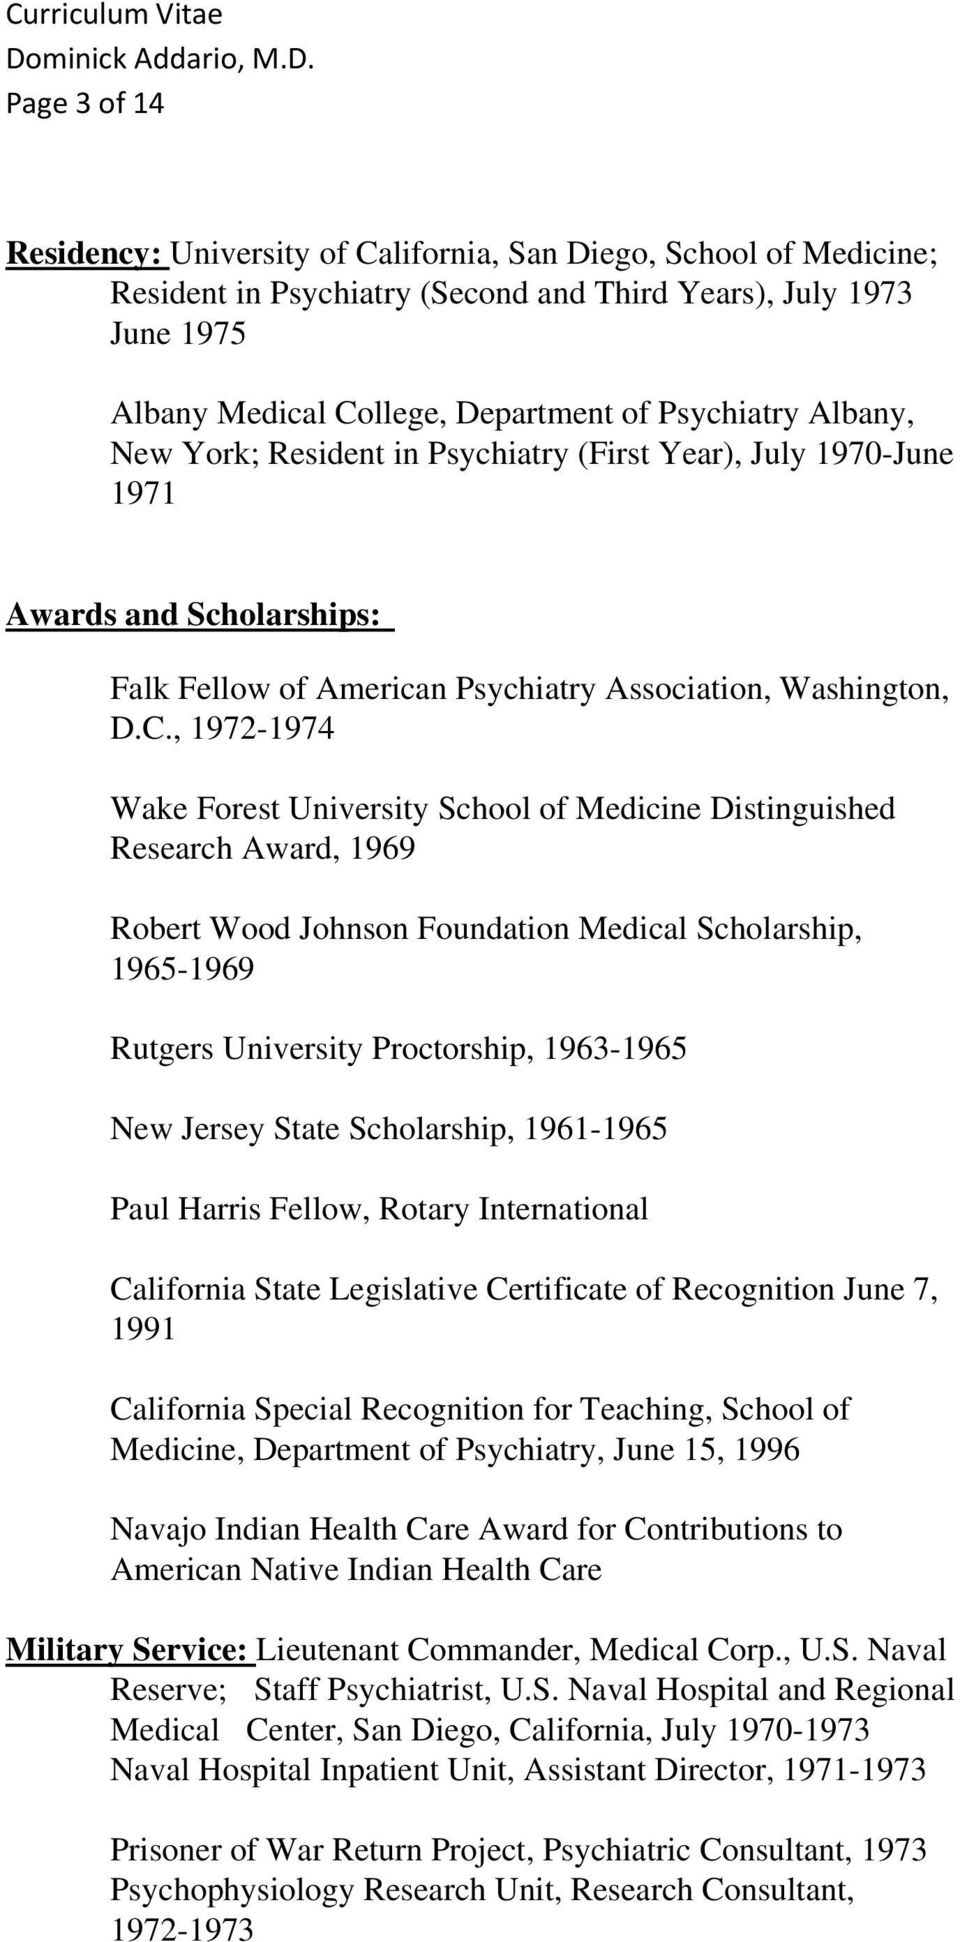 , 1972-1974 Wake Forest University School of Medicine Distinguished Research Award, 1969 Robert Wood Johnson Foundation Medical Scholarship, 1965-1969 Rutgers University Proctorship, 1963-1965 New